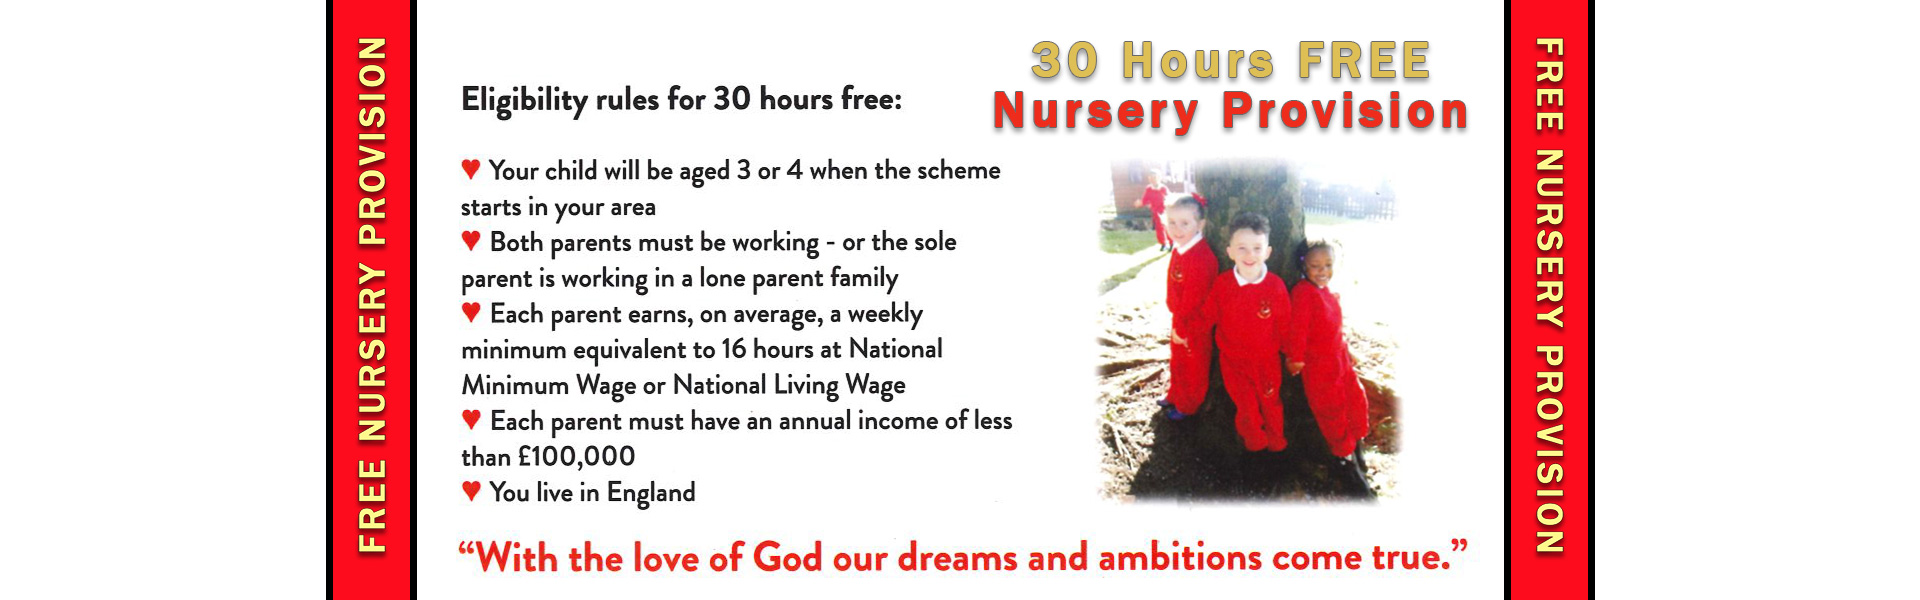 free-nursery-provision-at-sacred-heart-school-a